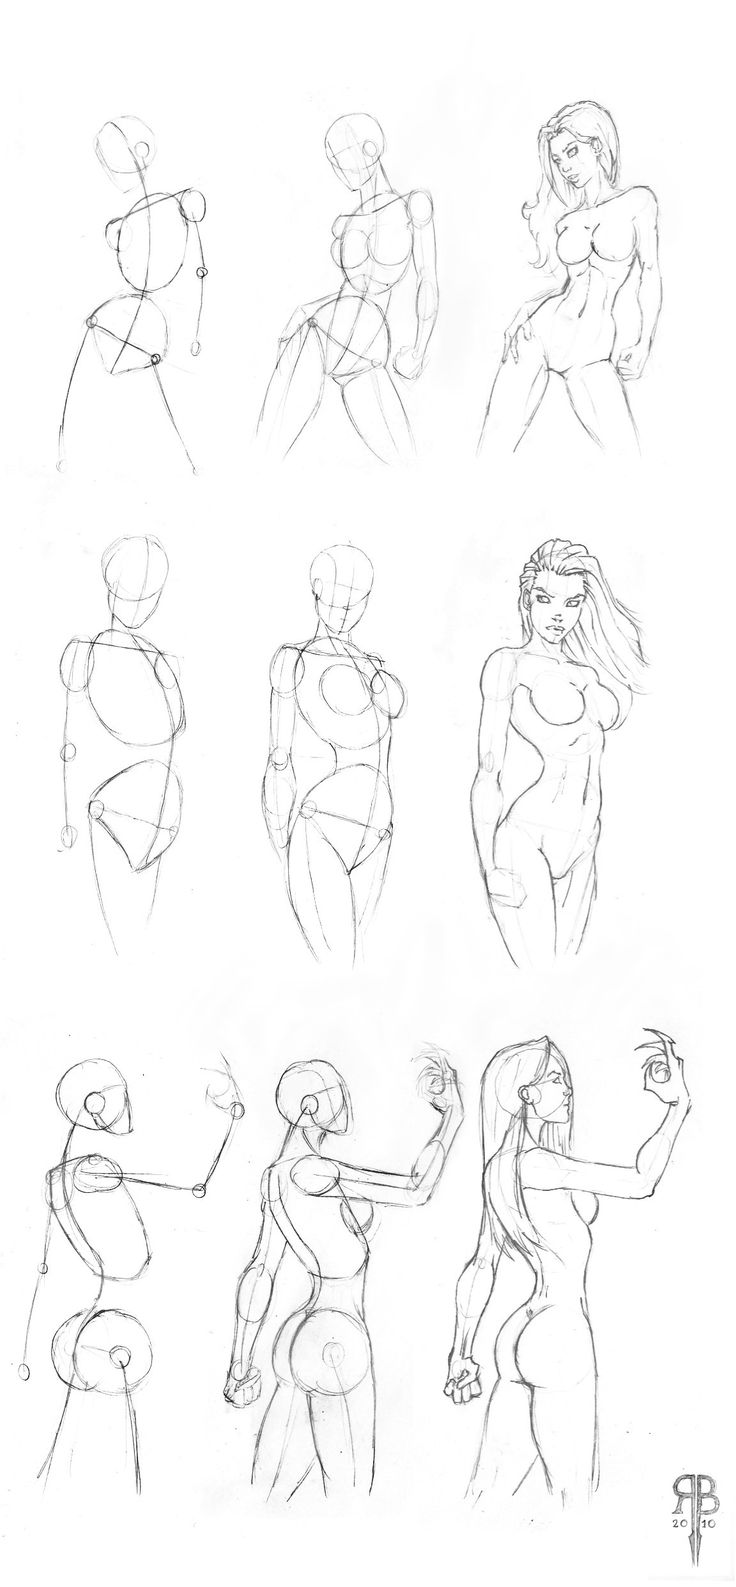 female_body_shapes_part_2_by_rofelrolf-d3571u1.jpg (1152×2484)